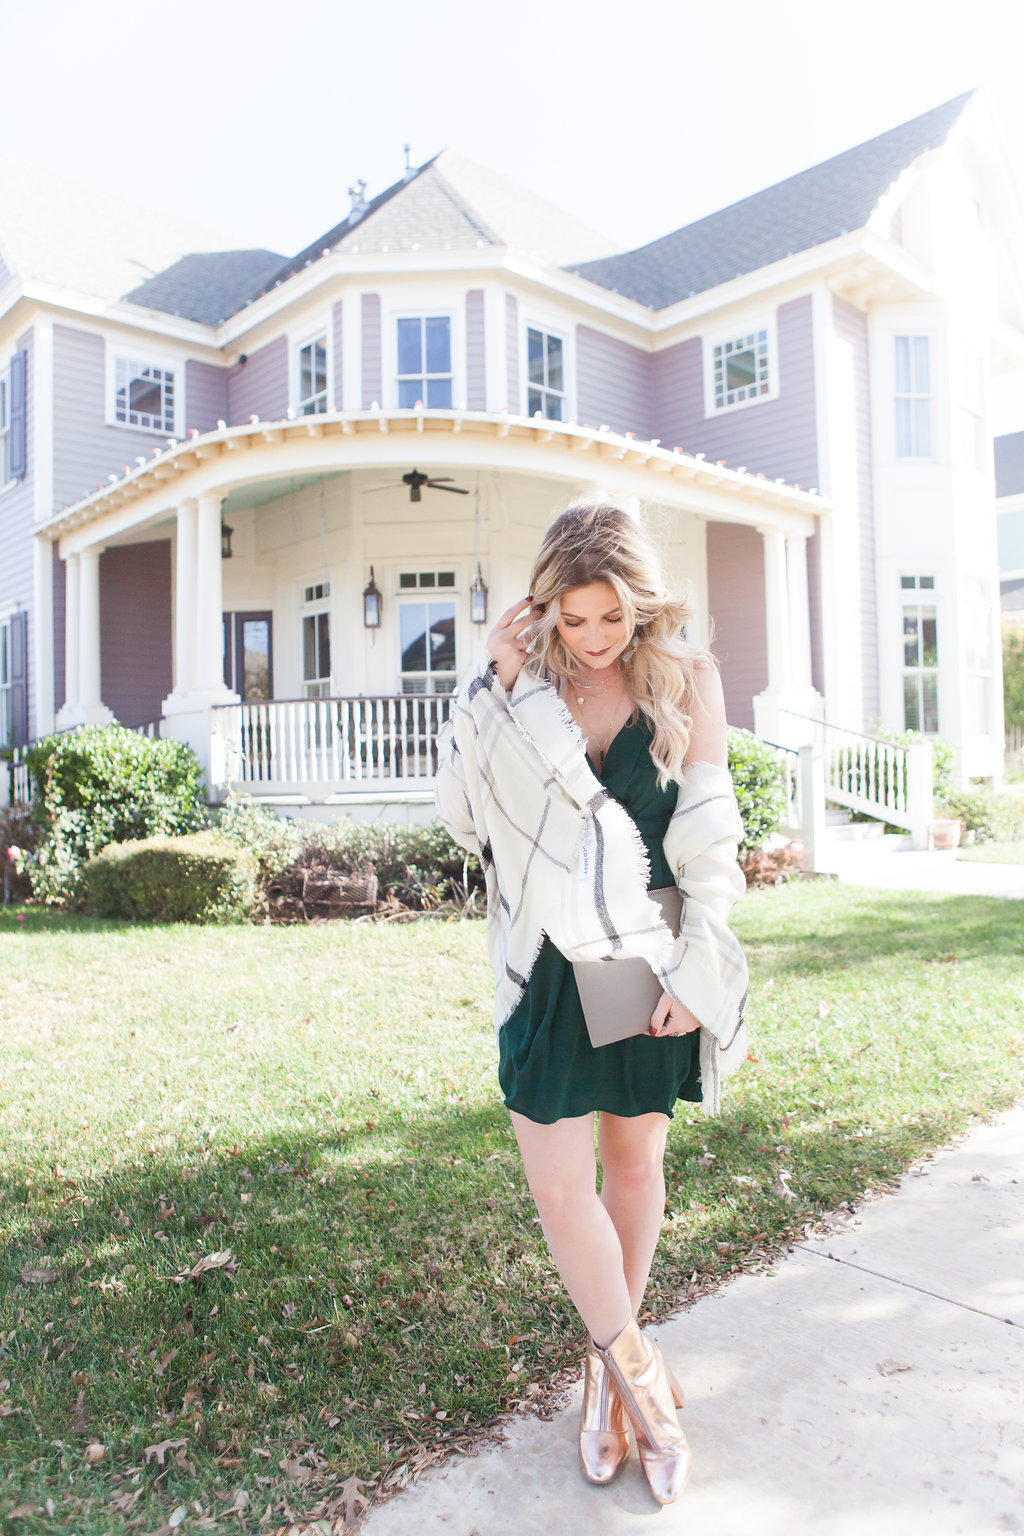 Holiday Inspired Look | Pine Green Dress To Make You Stand Out | Audrey Madison Stowe a fashion and lifestyle blogger - 5 Holiday Looks To Get Inspired by Texas fashion blogger Audrey Madison Stowe